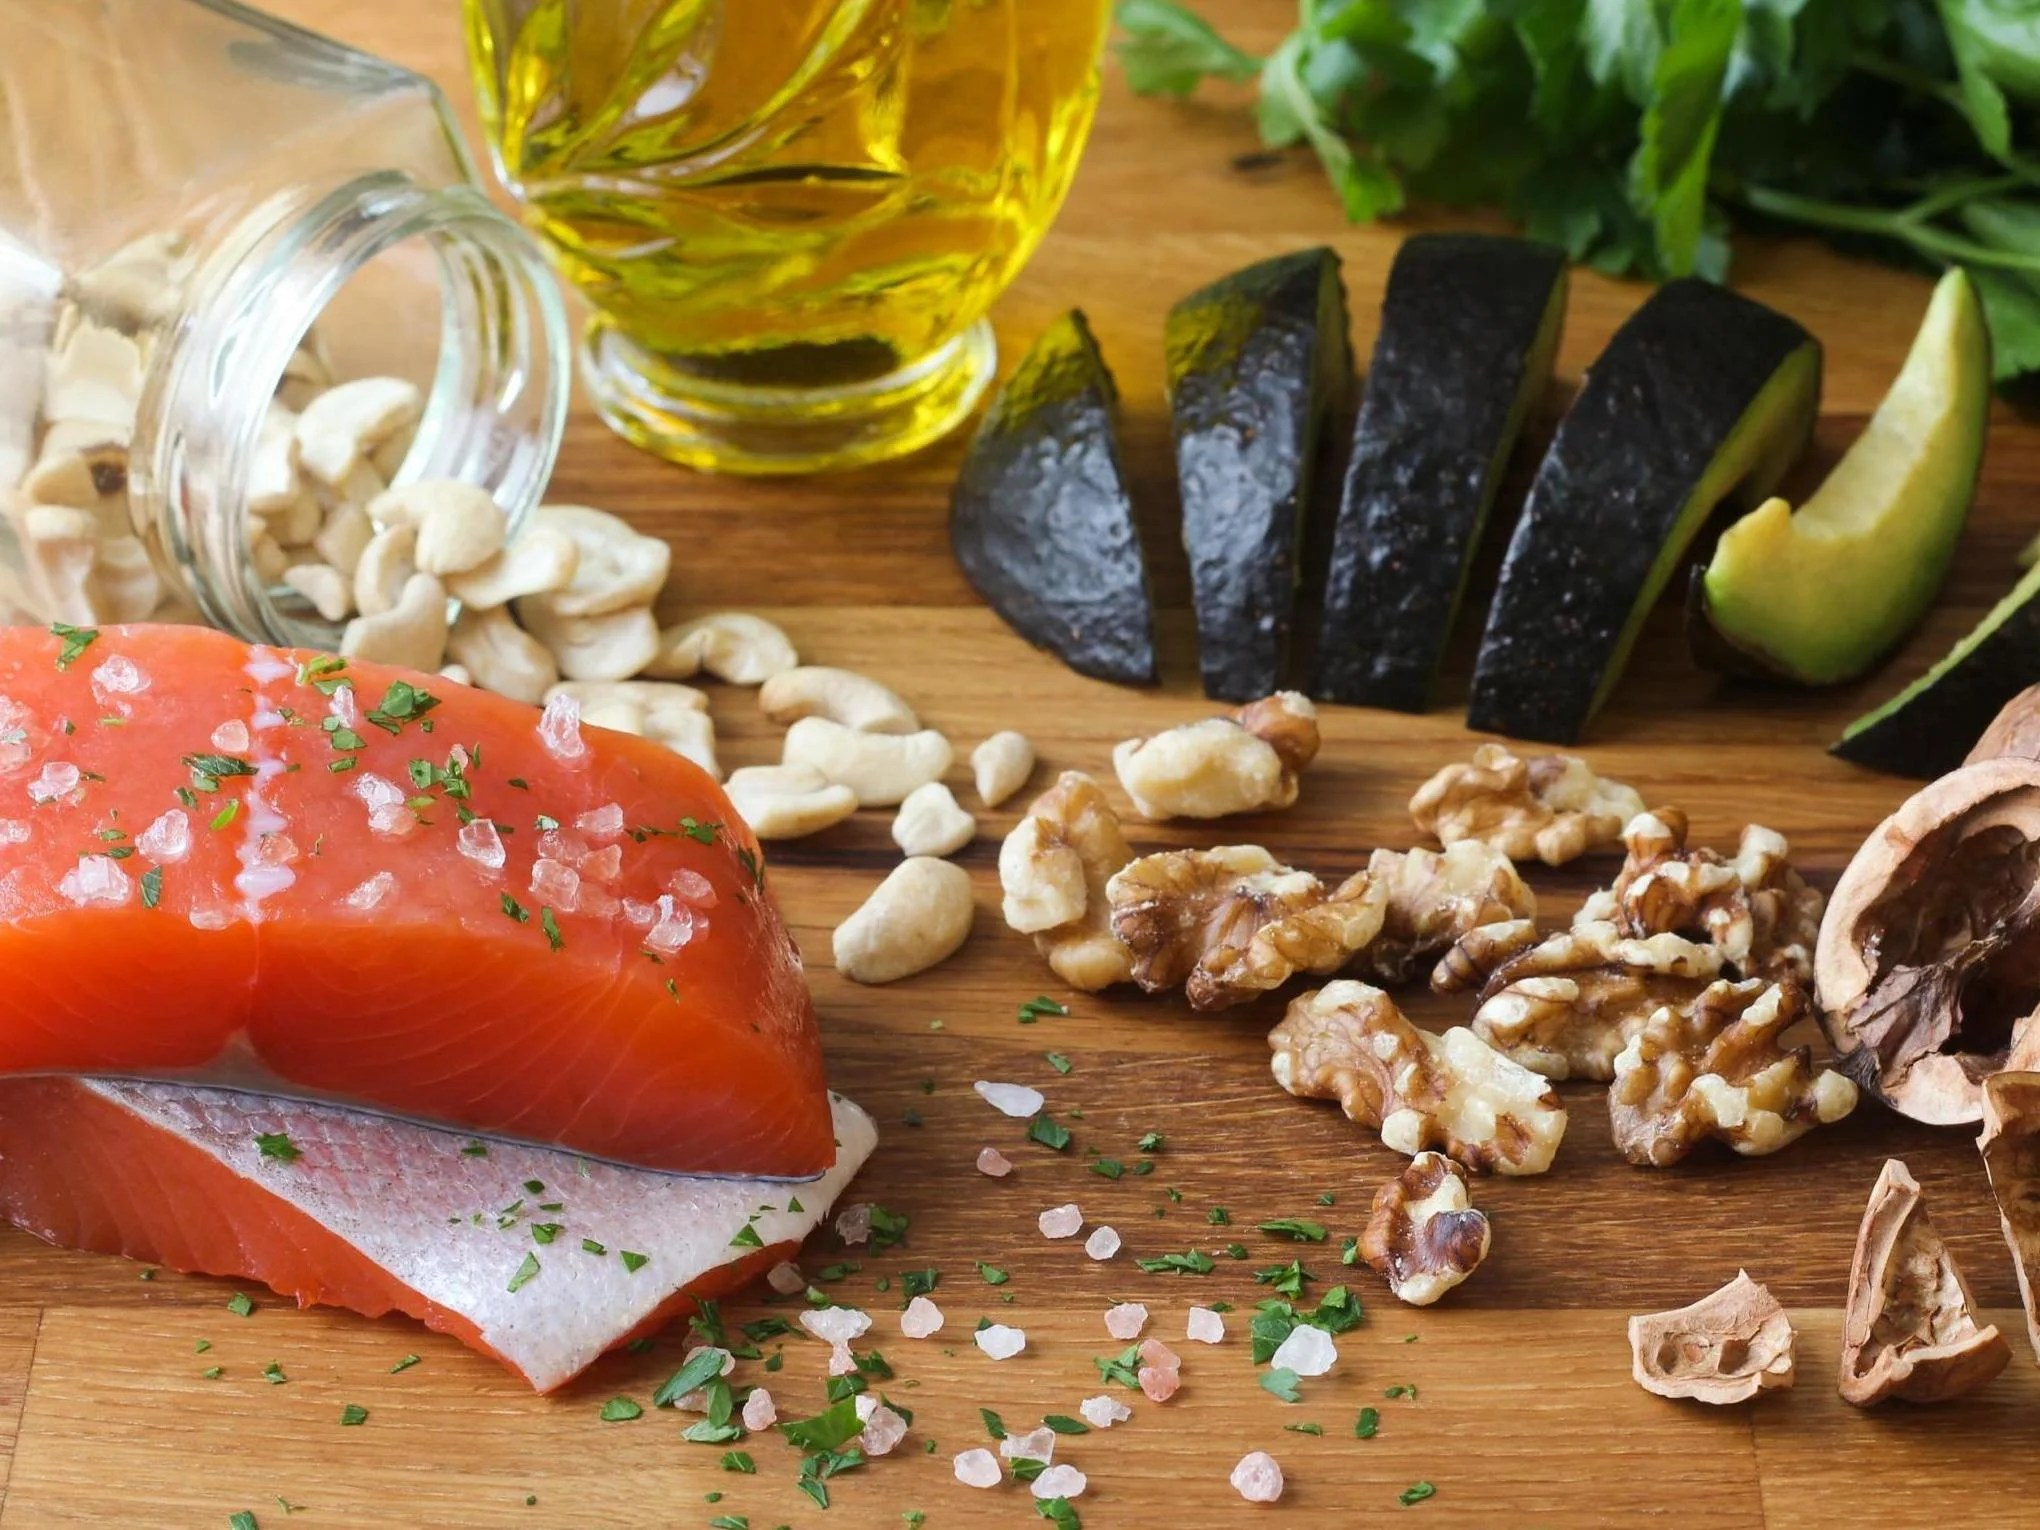 Mediterrane Küche An Bord How Eating Mediterranean Foods Can Reduce Women S Risk Of Stroke